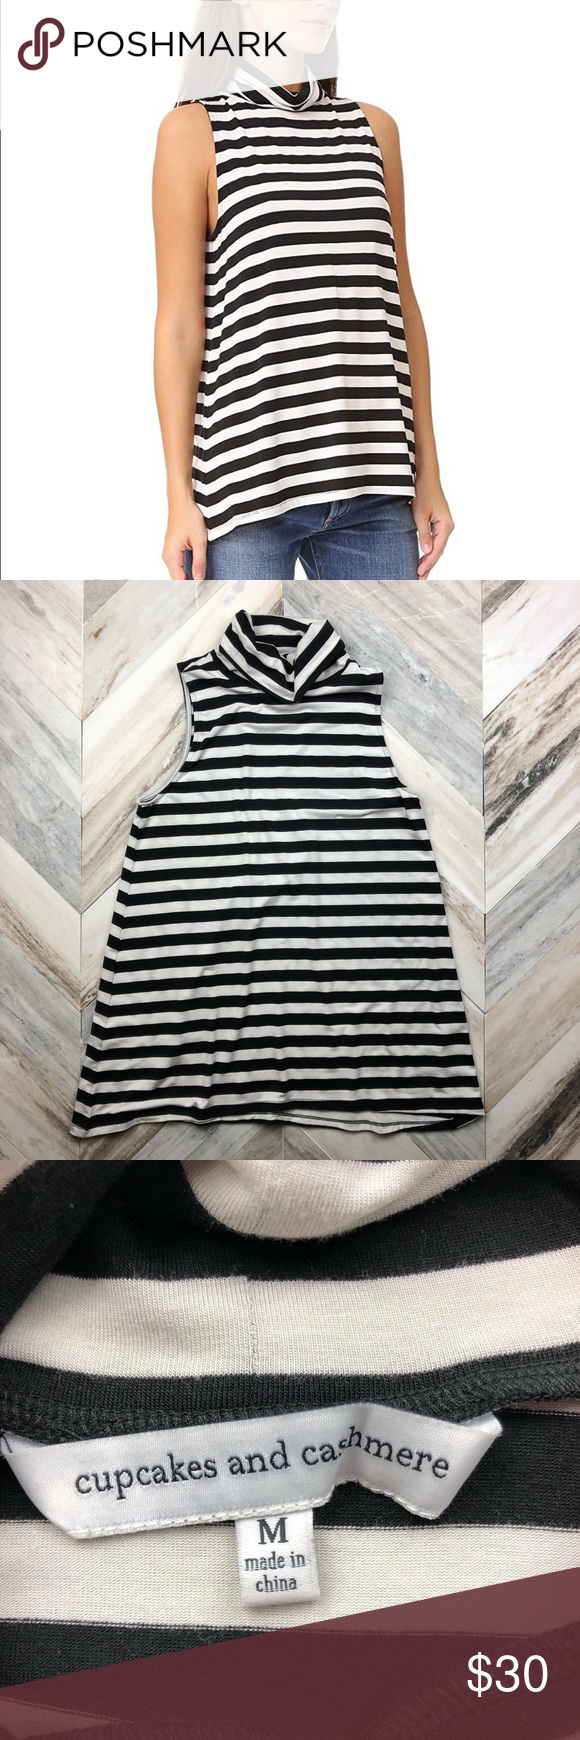 94823db39a Cupcakes and Cashmere Shelene Striped Turtleneck Gently used condition. No  holes or stains. Sleeveless turtleneck tank with black and white stripes.